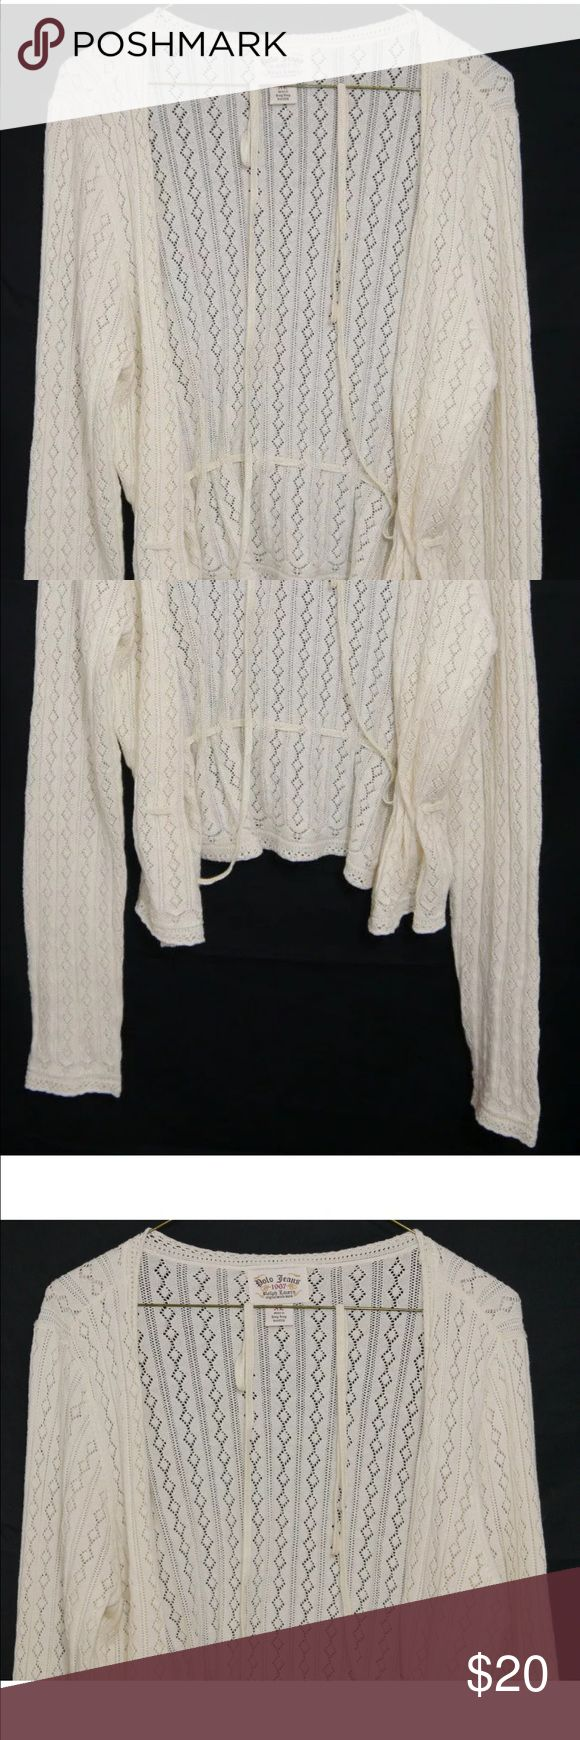 Polo Jeans Ralph Lauren Cream Loose Knit Cardigan Pre-Owned in Excellent Condition Women's Polo Jeans Ralph Lauren Women's Cream Loose Knit Waist Tie Cardigan XL   Material:  96% Cotton / 4% Other Materials  XL Polo by Ralph Lauren Sweaters Cardigans